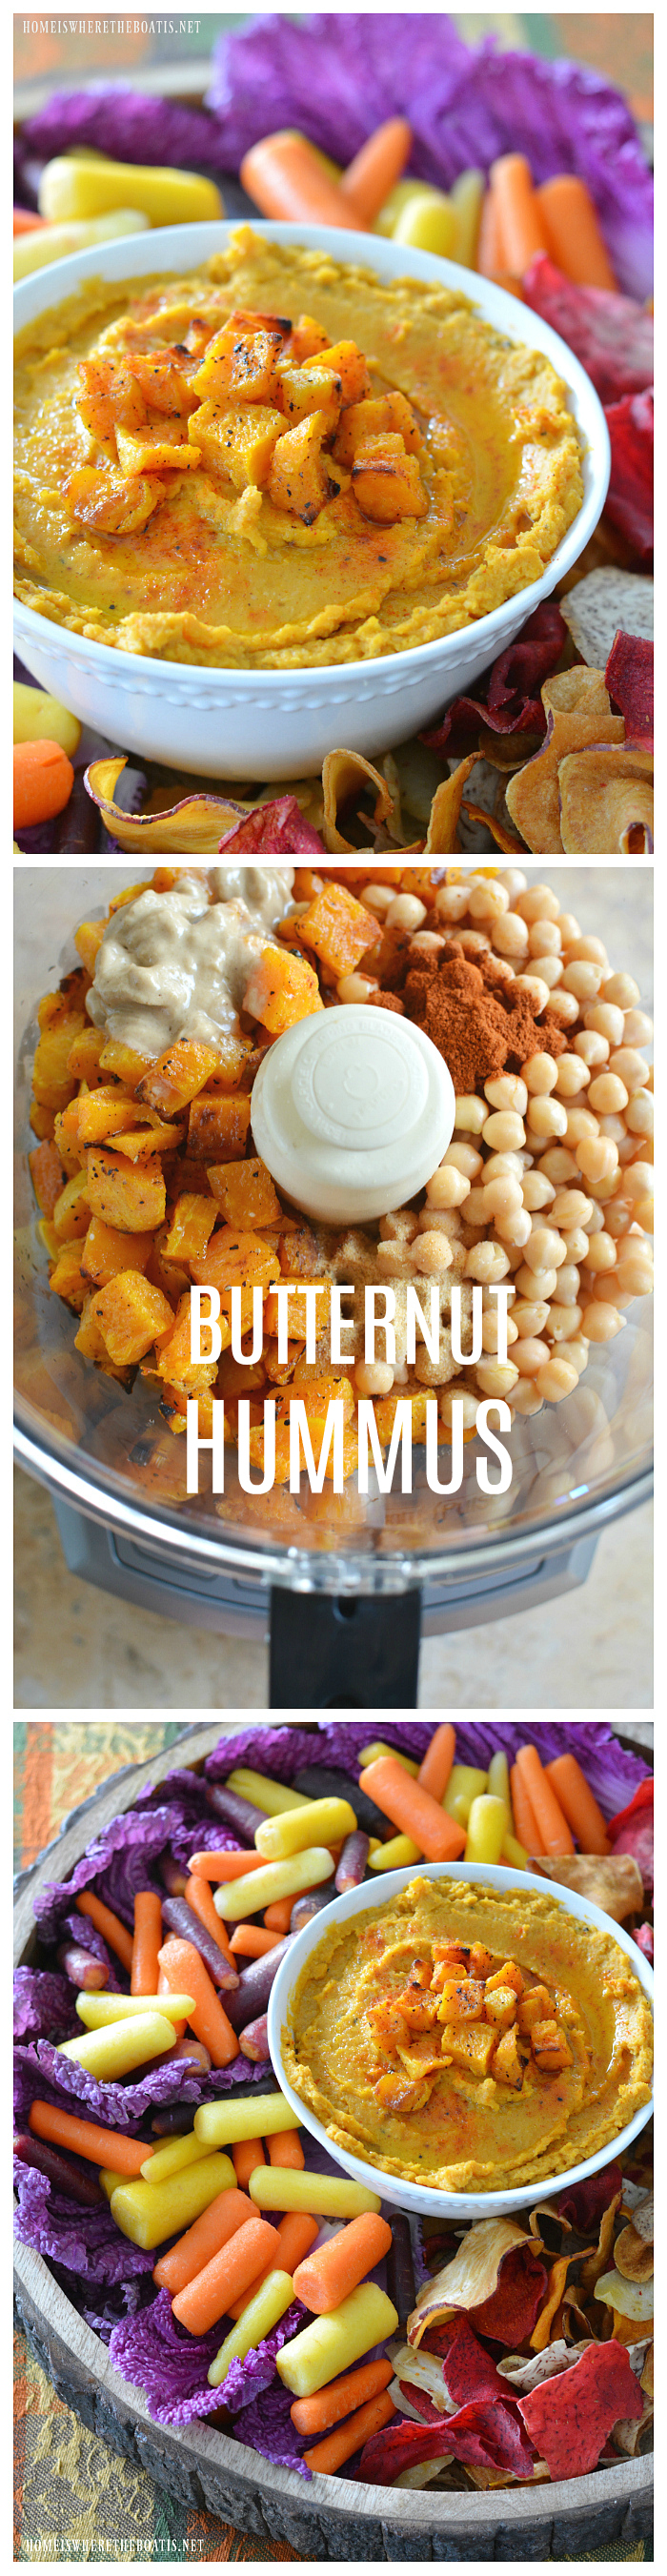 Butternut Hummus! Easy, oh so good, and healthy too! | ©homeiswheretheboatis.net #recipe #fall #appetizer